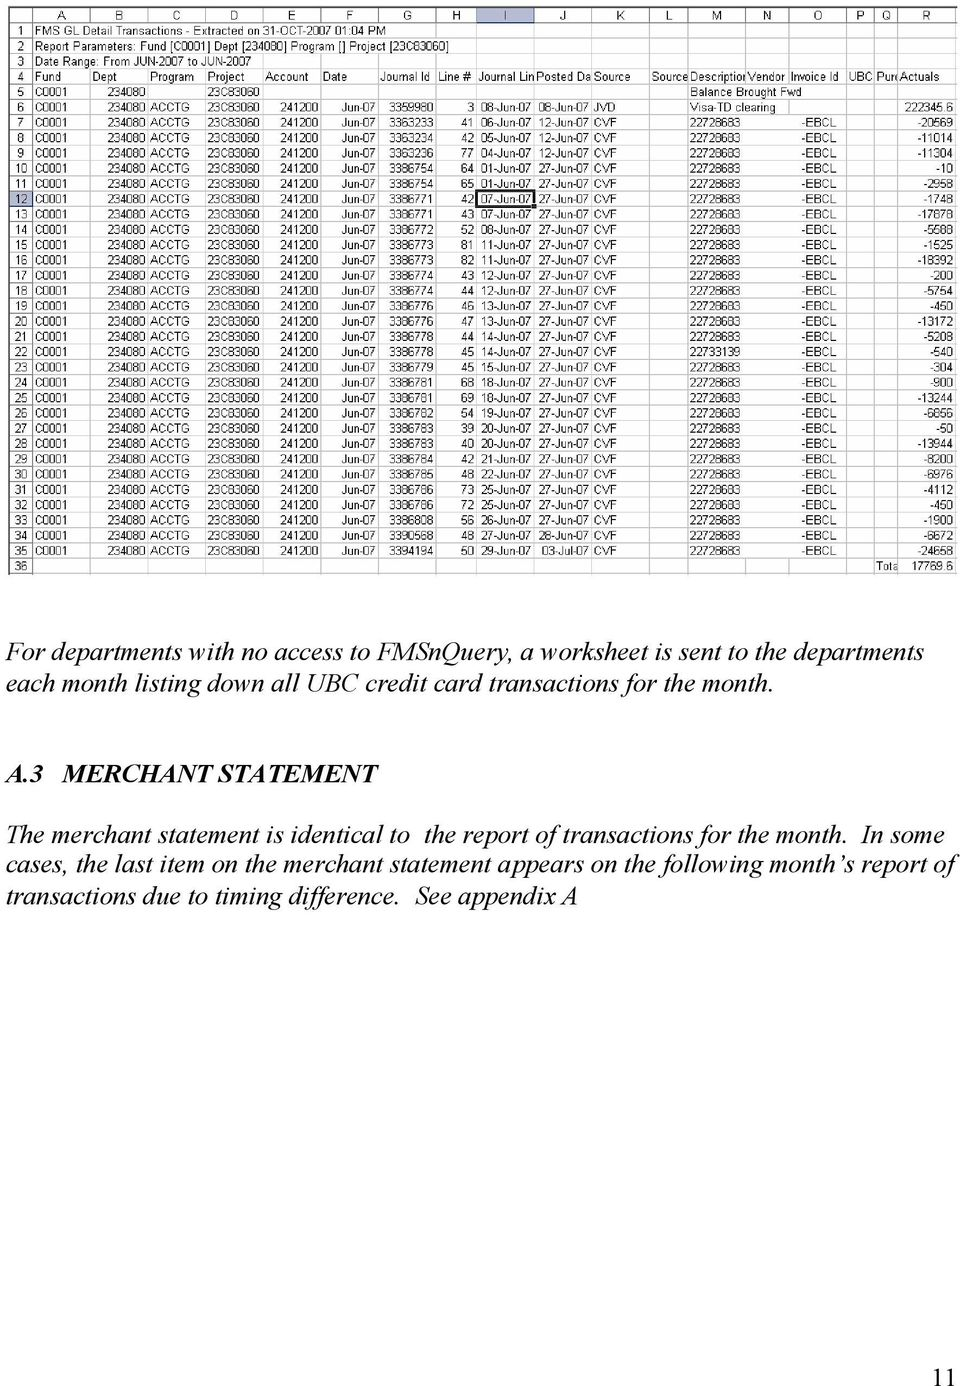 3 MERCHANT STATEMENT The merchant statement is identical to the report of transactions for the month.